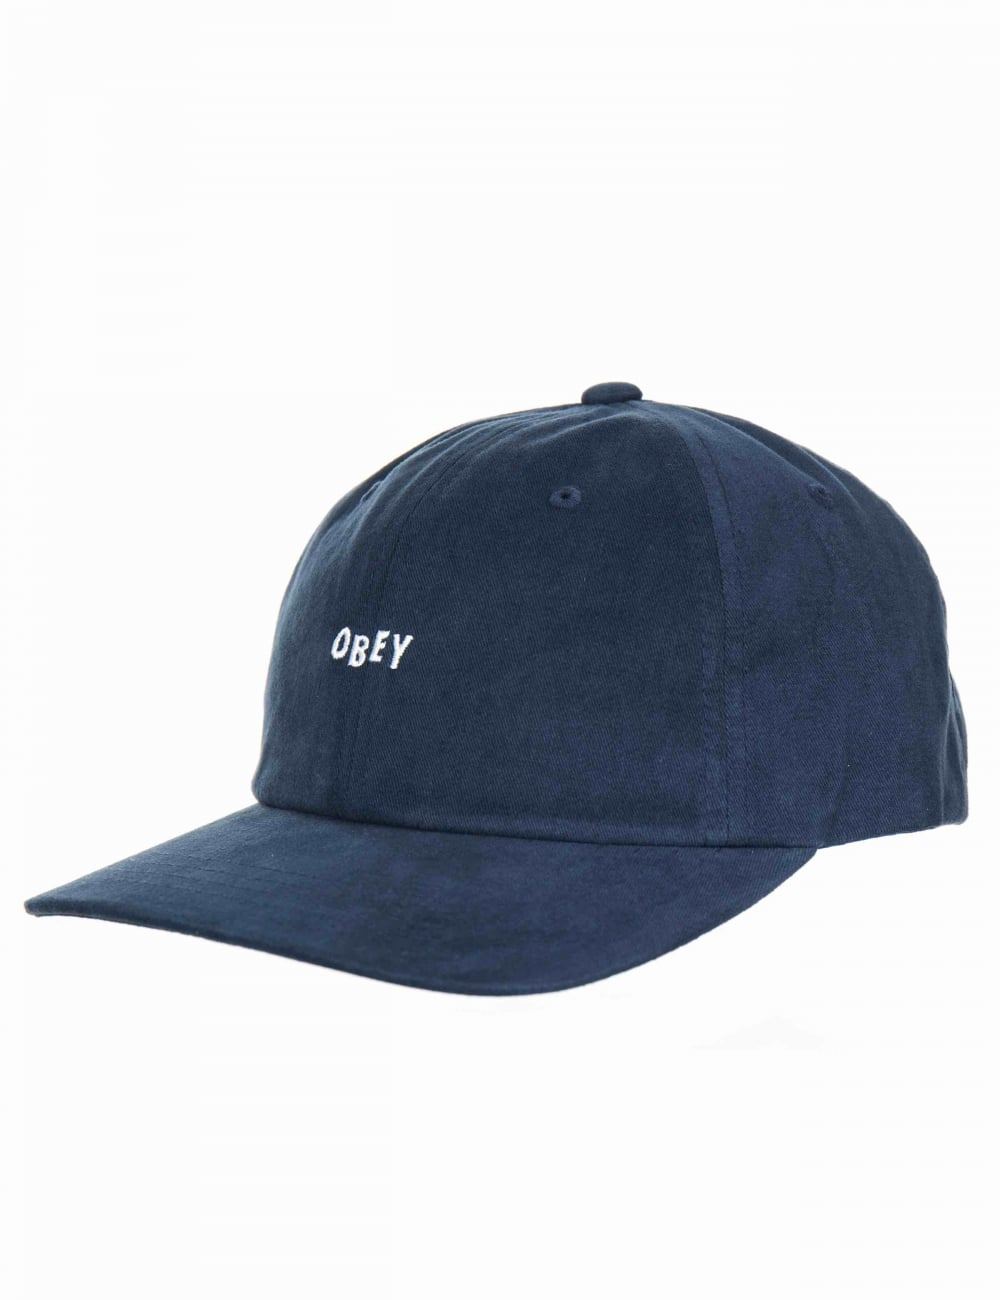 Obey Clothing Jumble Bar III 6 Panel Hat - Navy - Hat Shop from Fat ... 0860c6fd9811